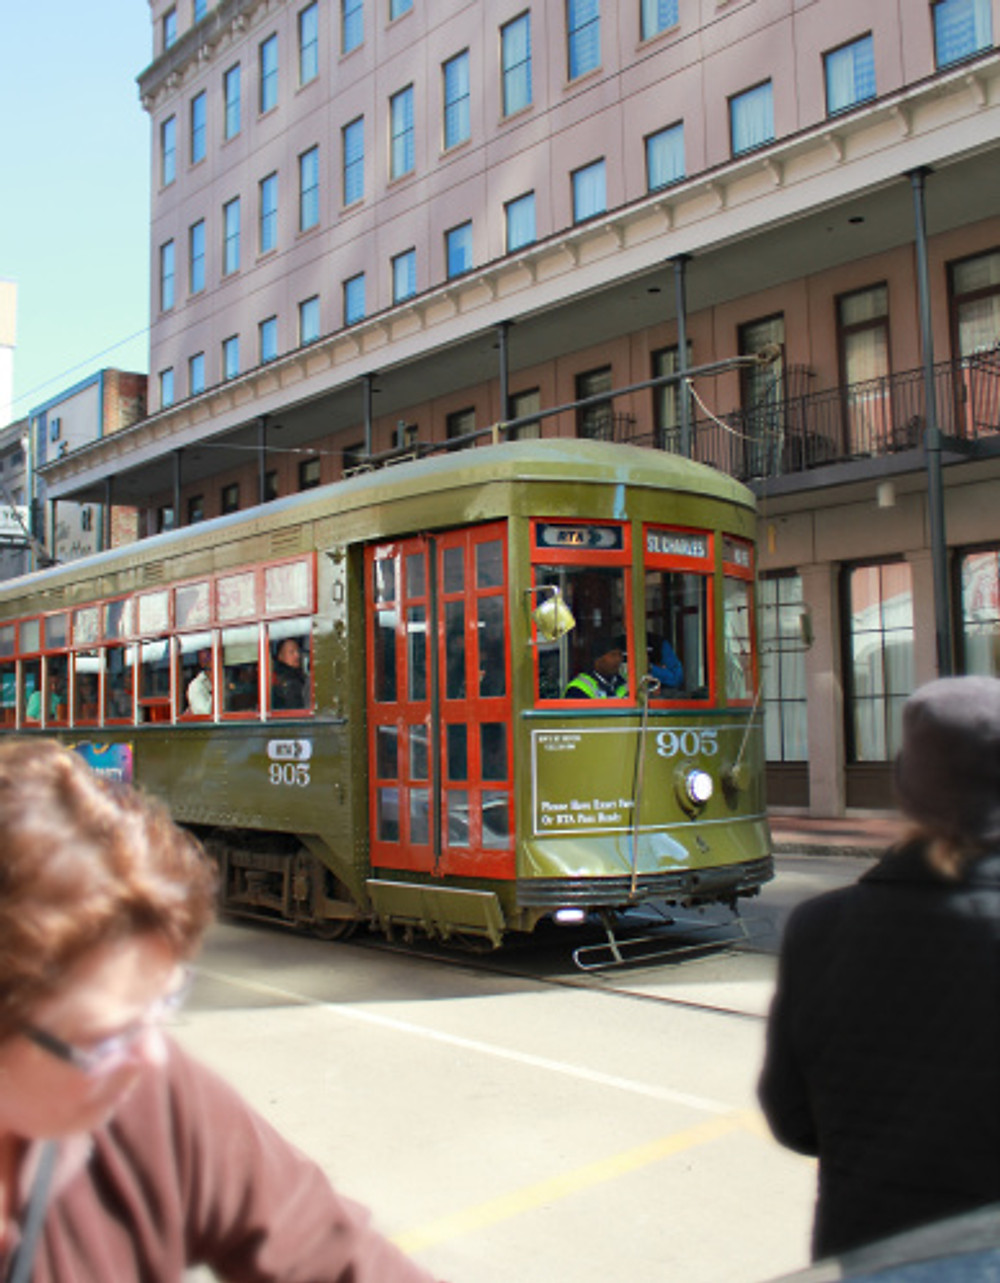 The historic trolleys that will take you all over the city.